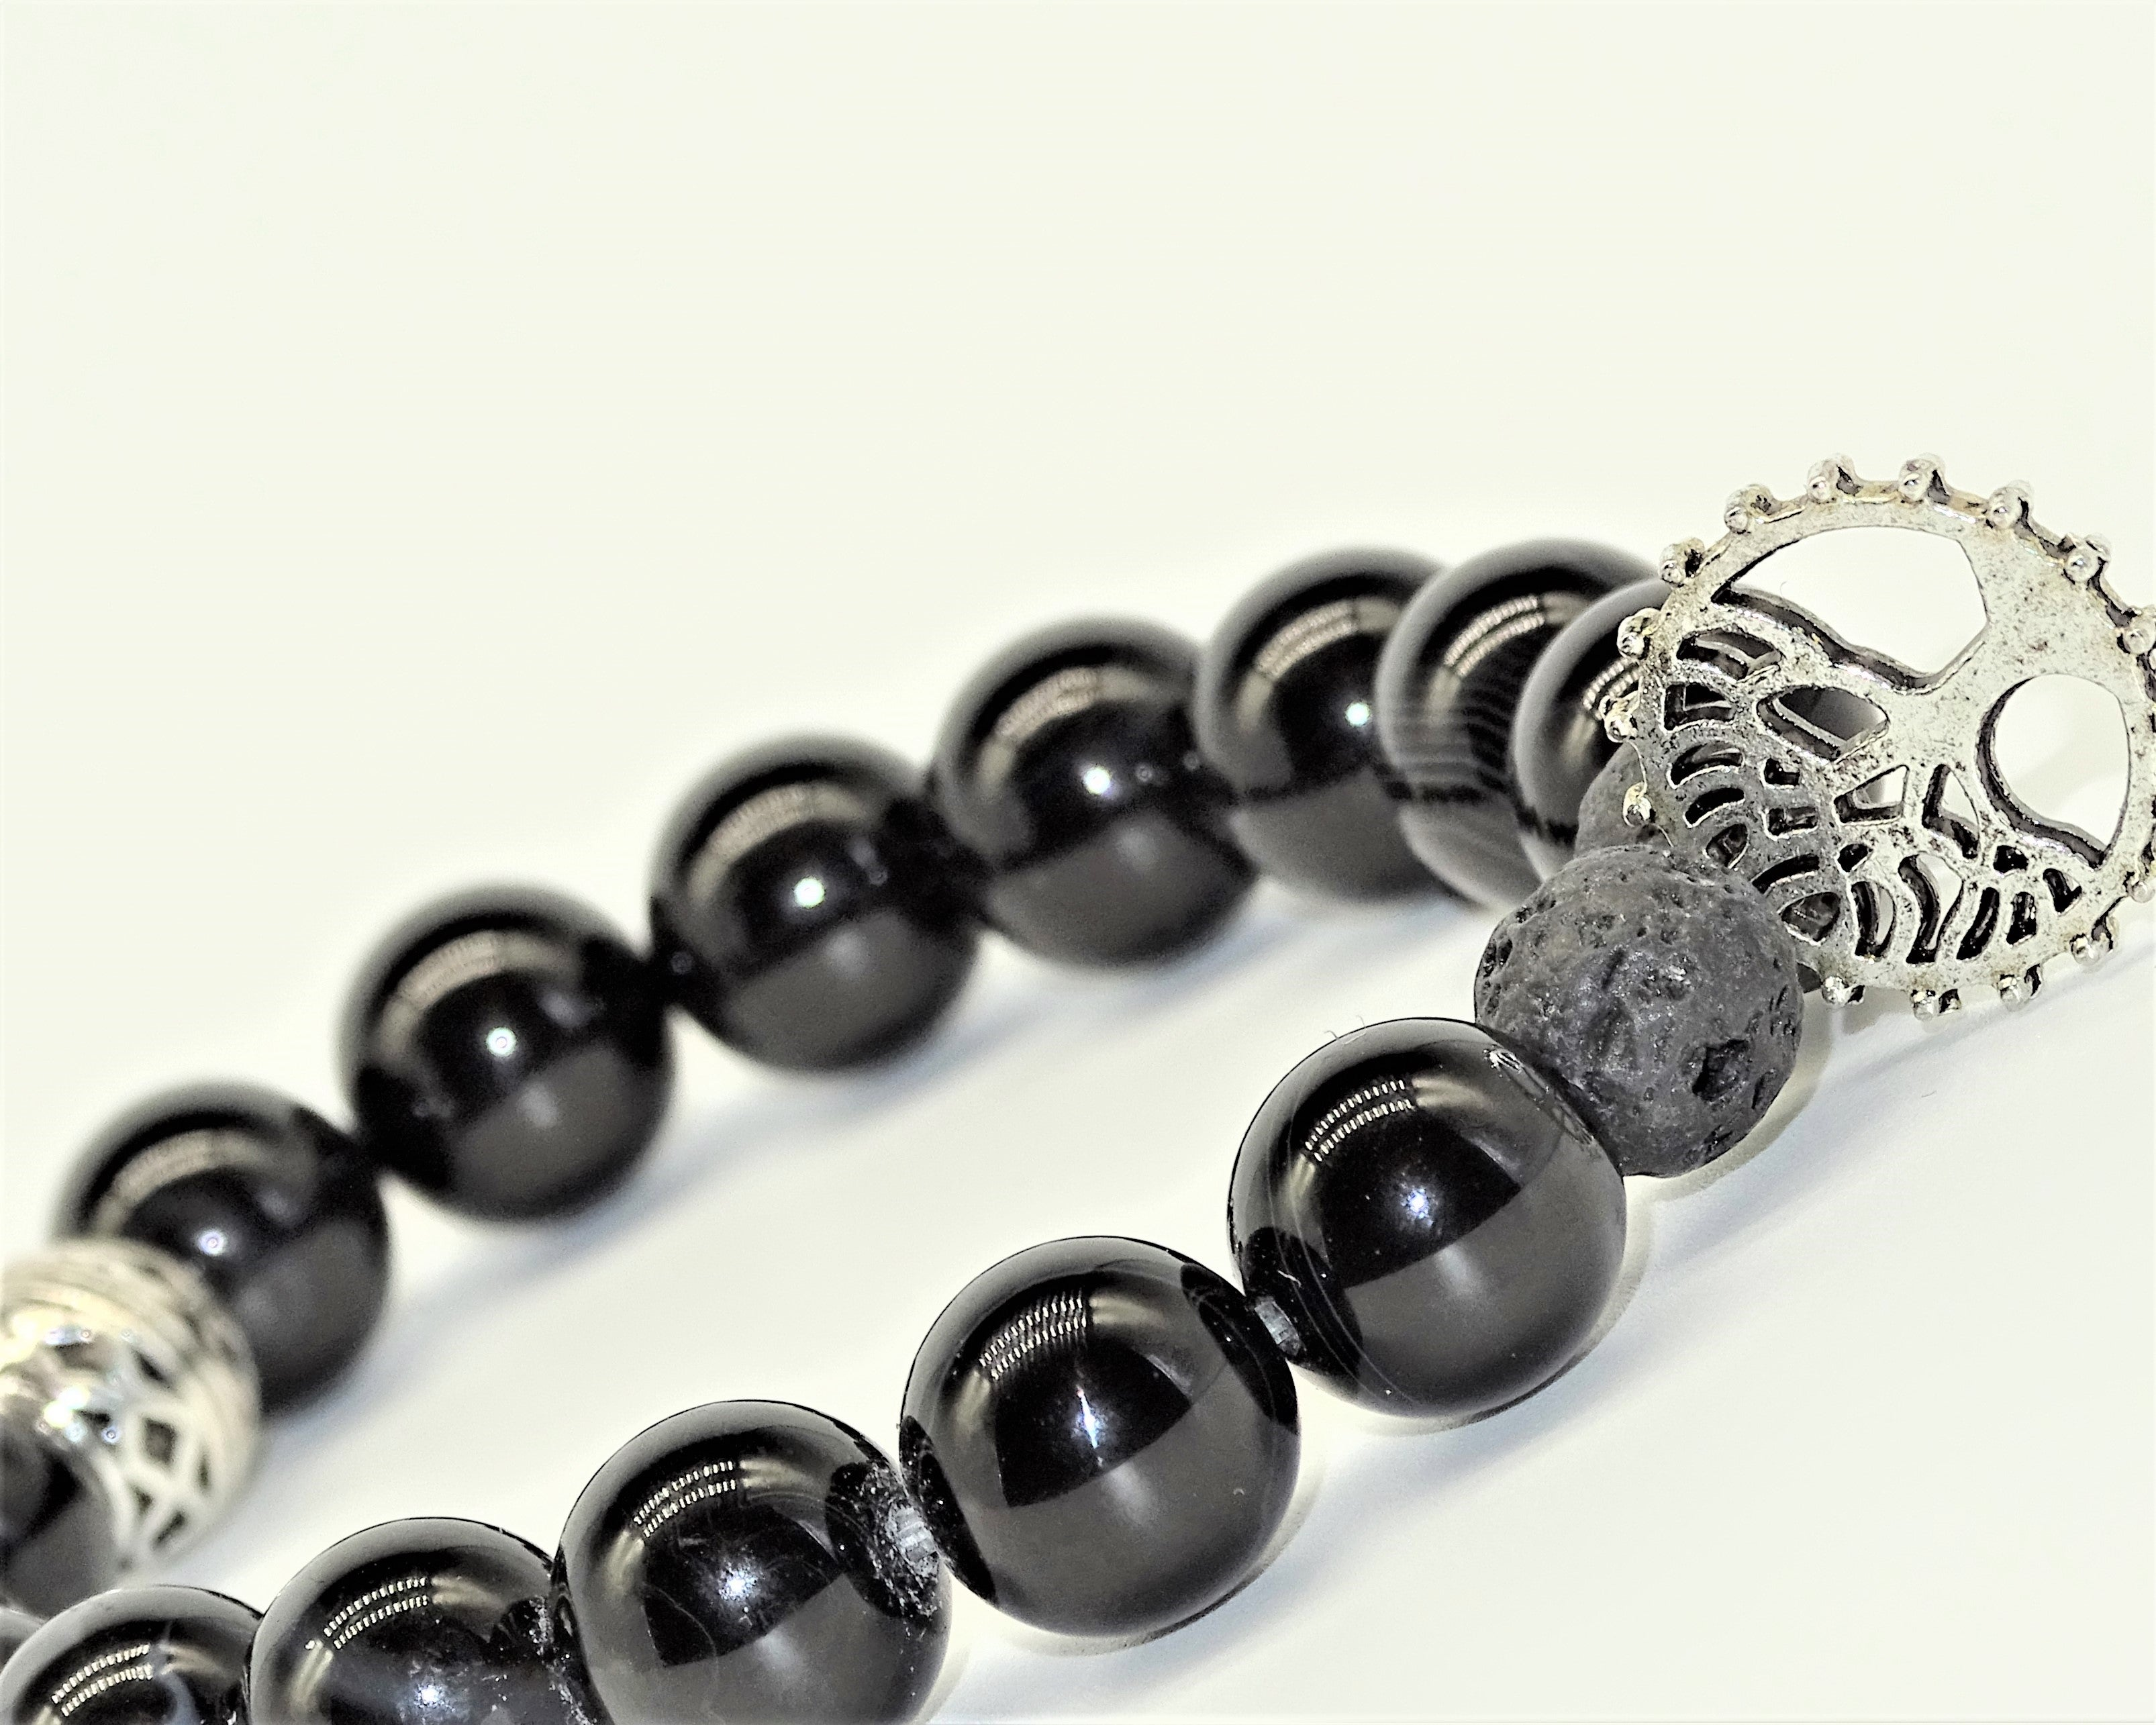 Black Obsidian & Lava Stone, Tree of Life - Protection, Courage, Deep Healing & Fresh Start